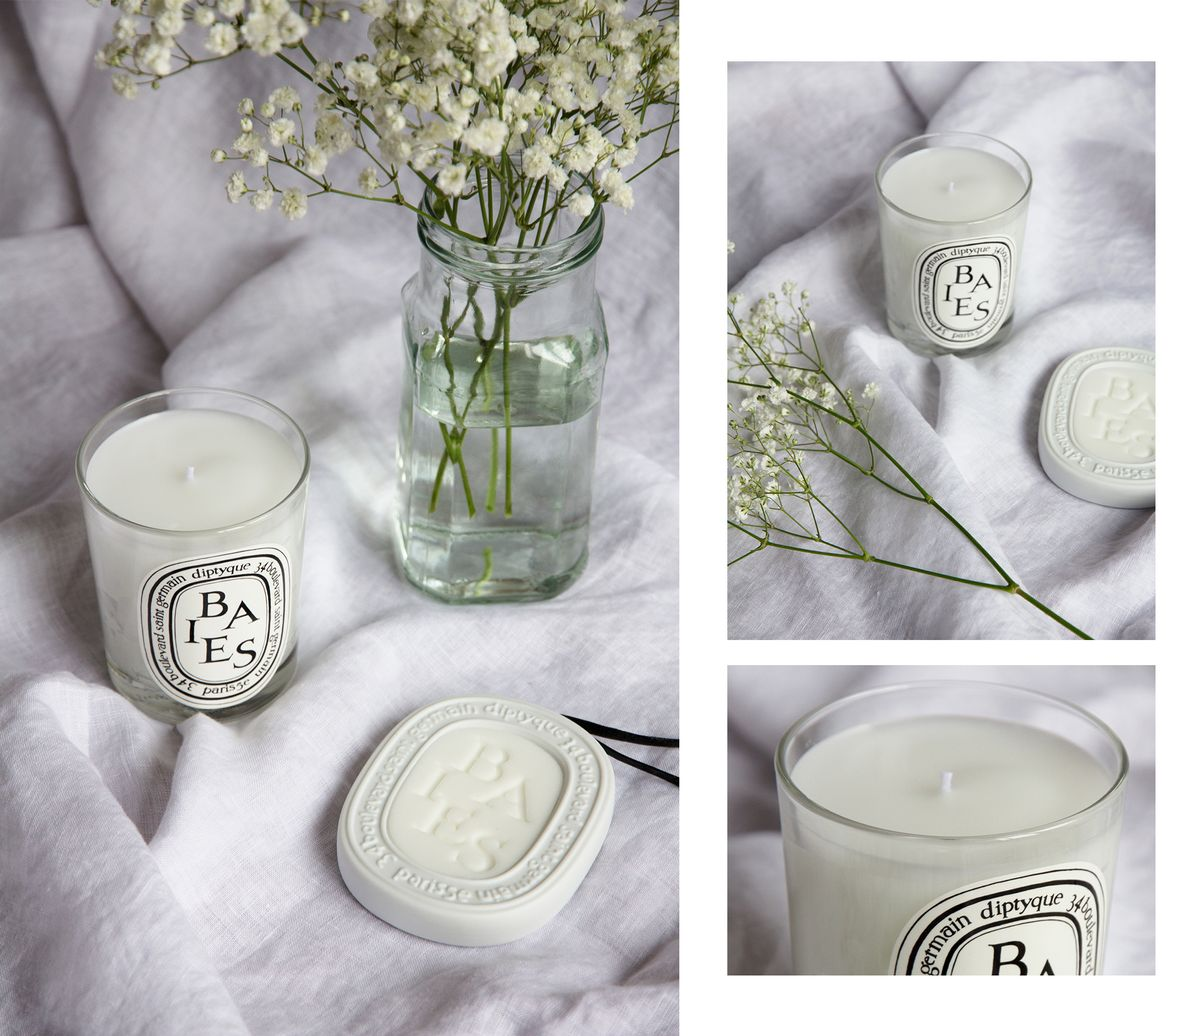 "<h5><em>Diptyque <a href=""https://www.mecca.com.au/diptyque/baies-candle/V-008665.html"" target=""_blank"">Baies Candle</a> ($87) and <a..."